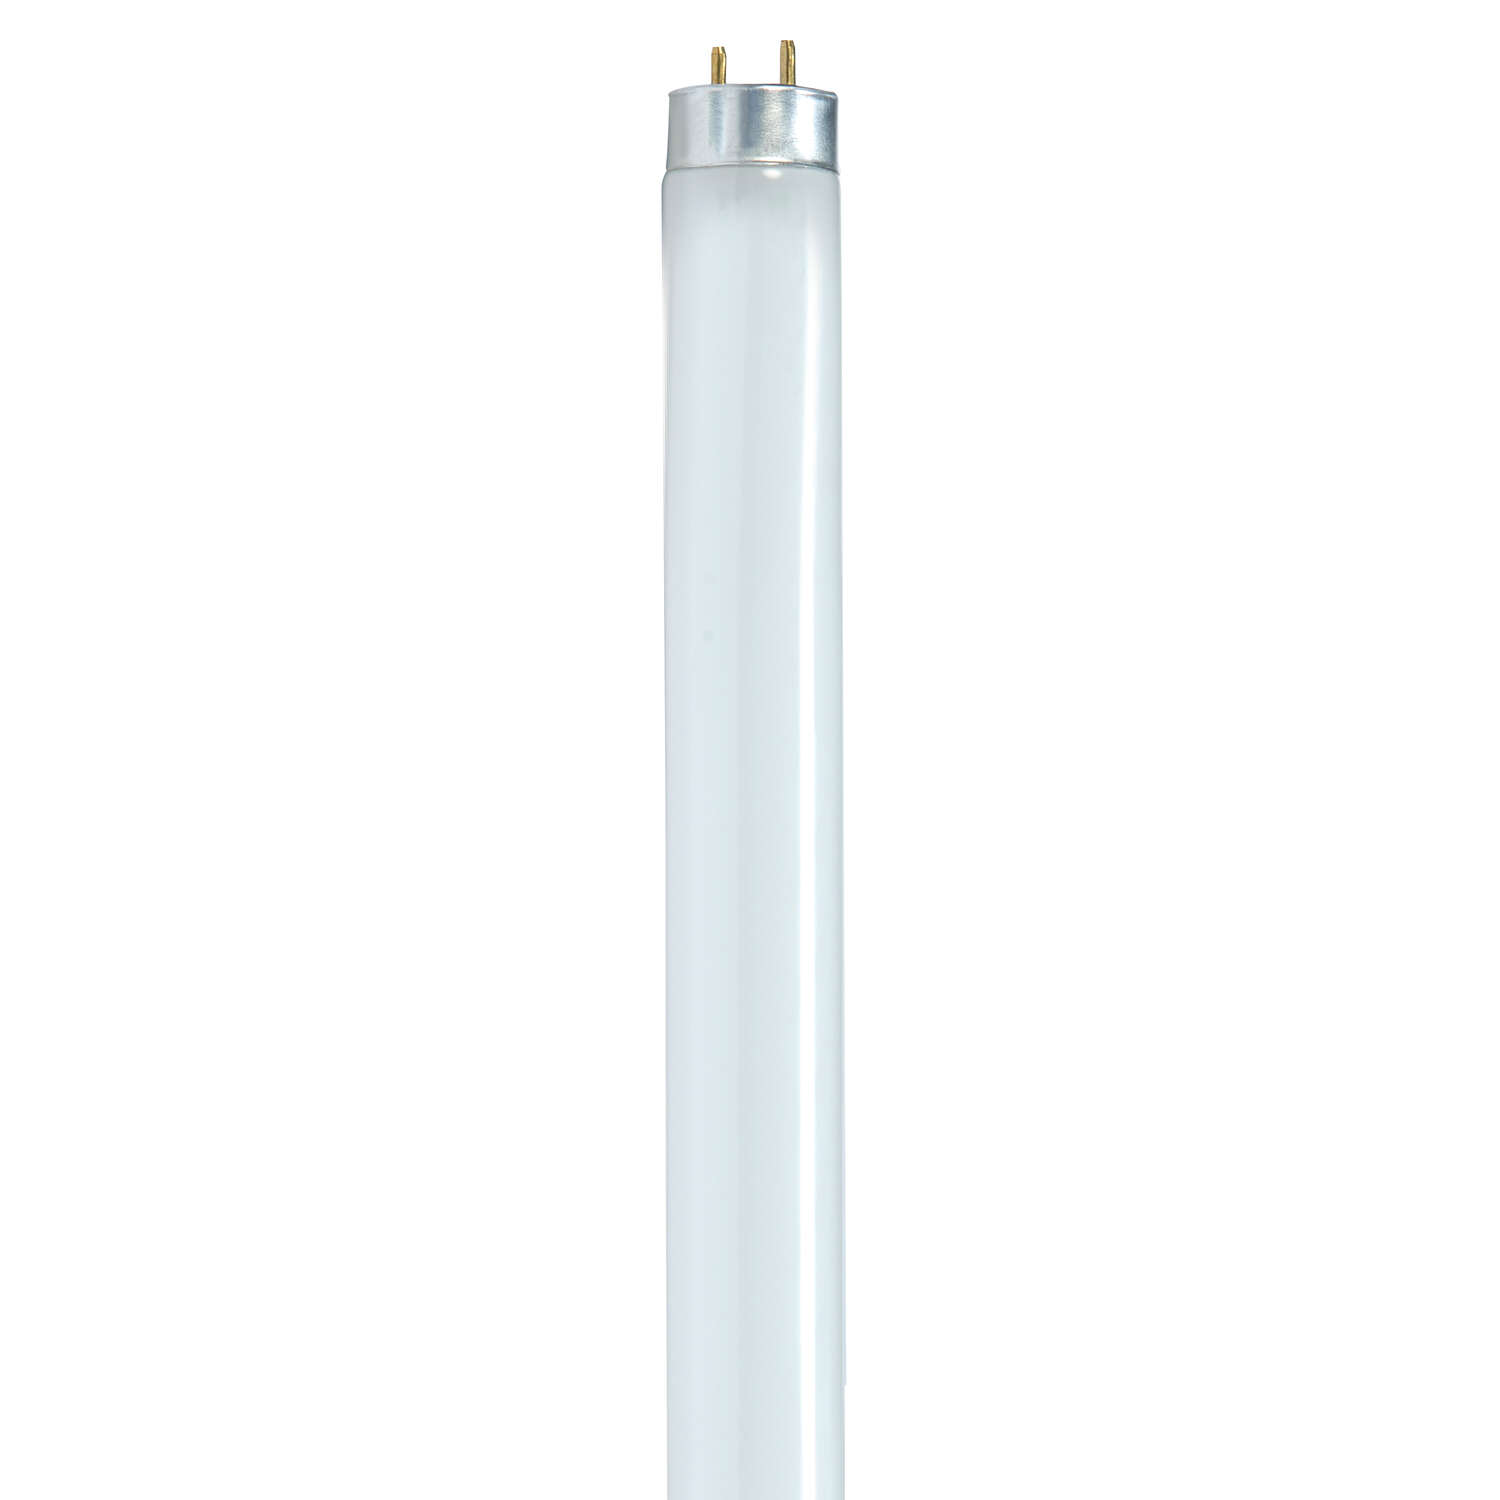 Satco 32 watts T8 1 in. Dia. x 47.78 in. L Fluorescent Bulb Cool White Linear 3500 K 1 pk